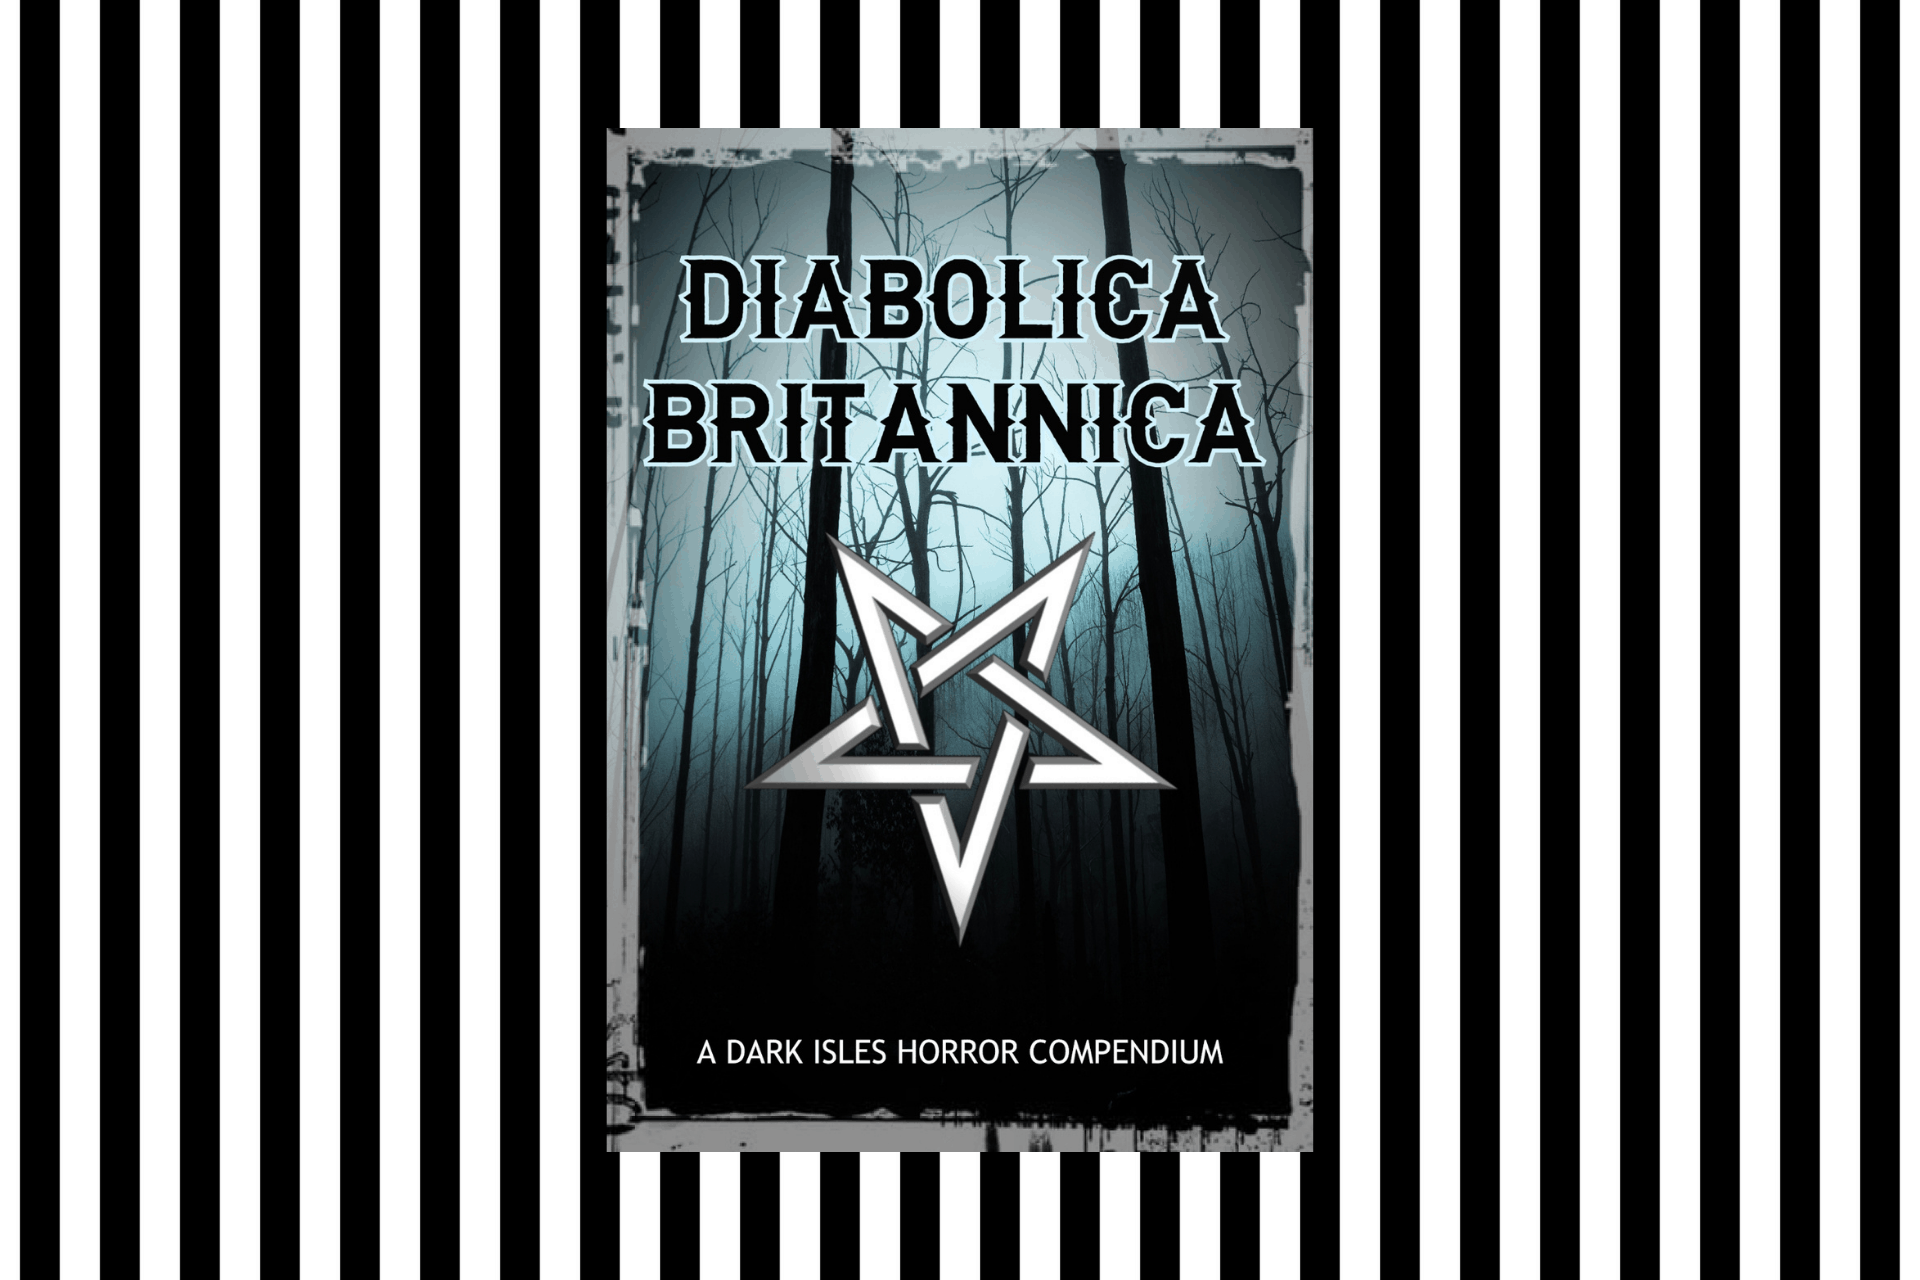 The book cover of Diabolica Britannica